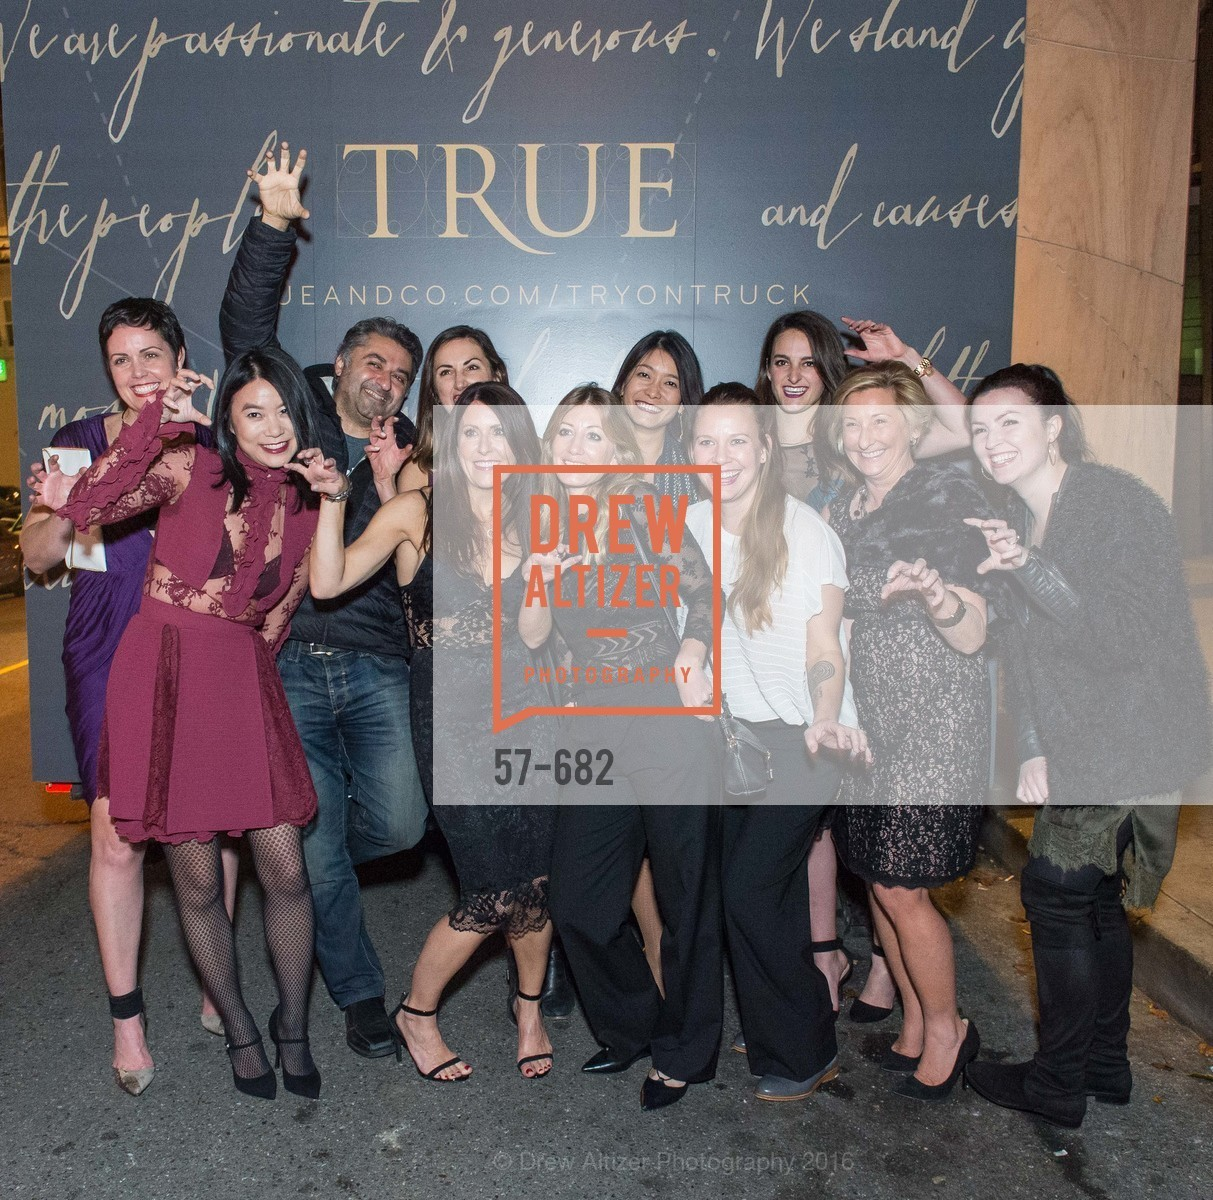 True And Co Group Photo, Photo #57-682